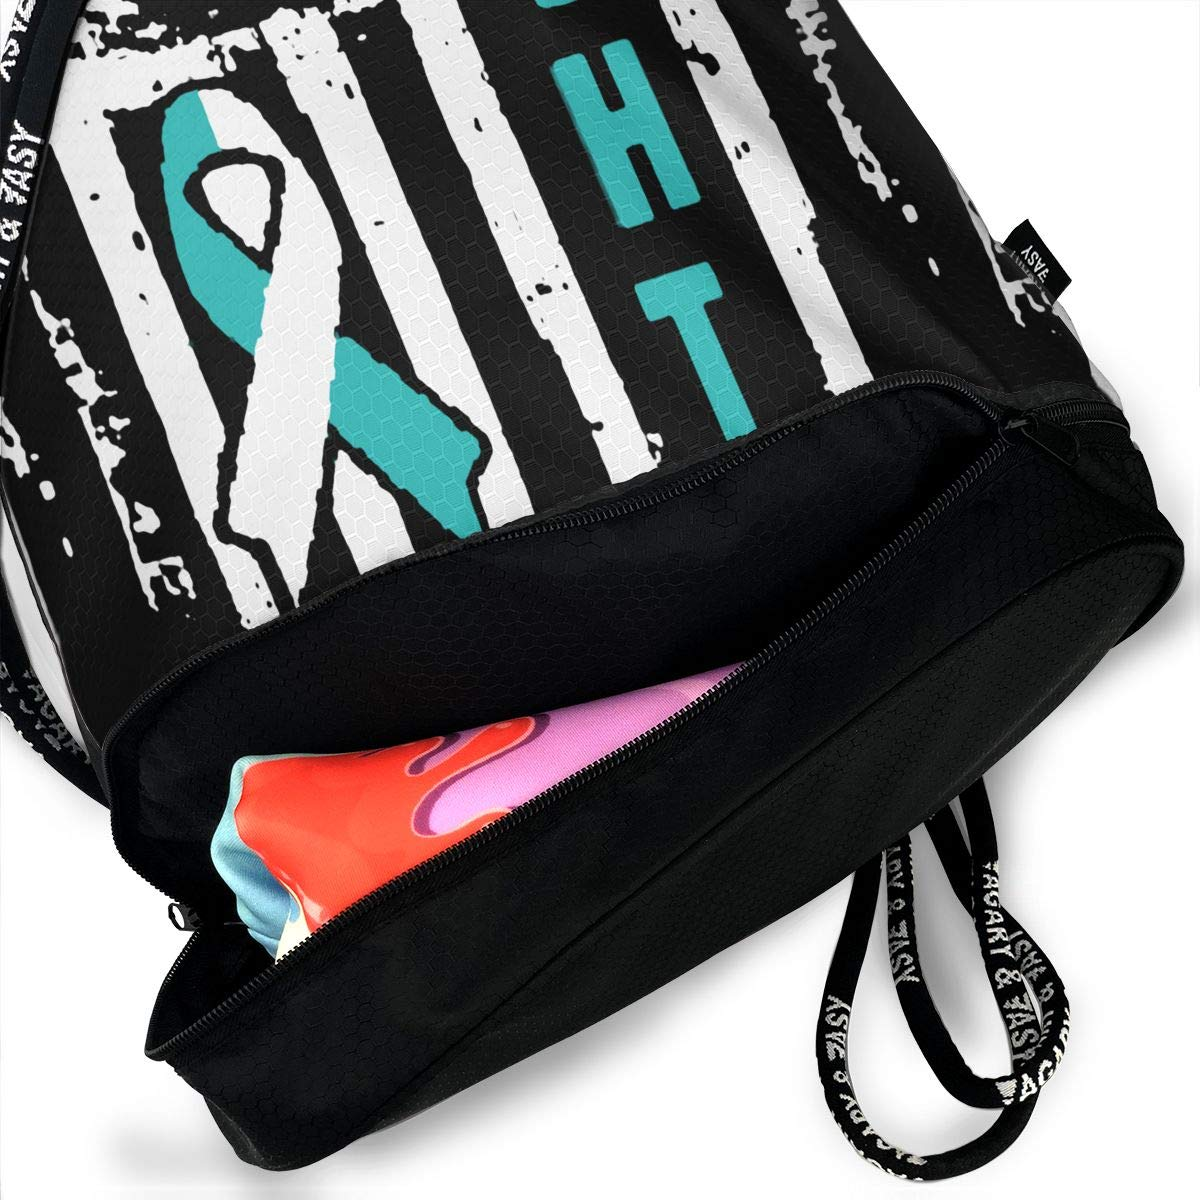 Cervical Cancer Awareness Flag Drawstring Bag Multifunctional String Backpack Custom Cinch Backpack Rucksack Gym Bag